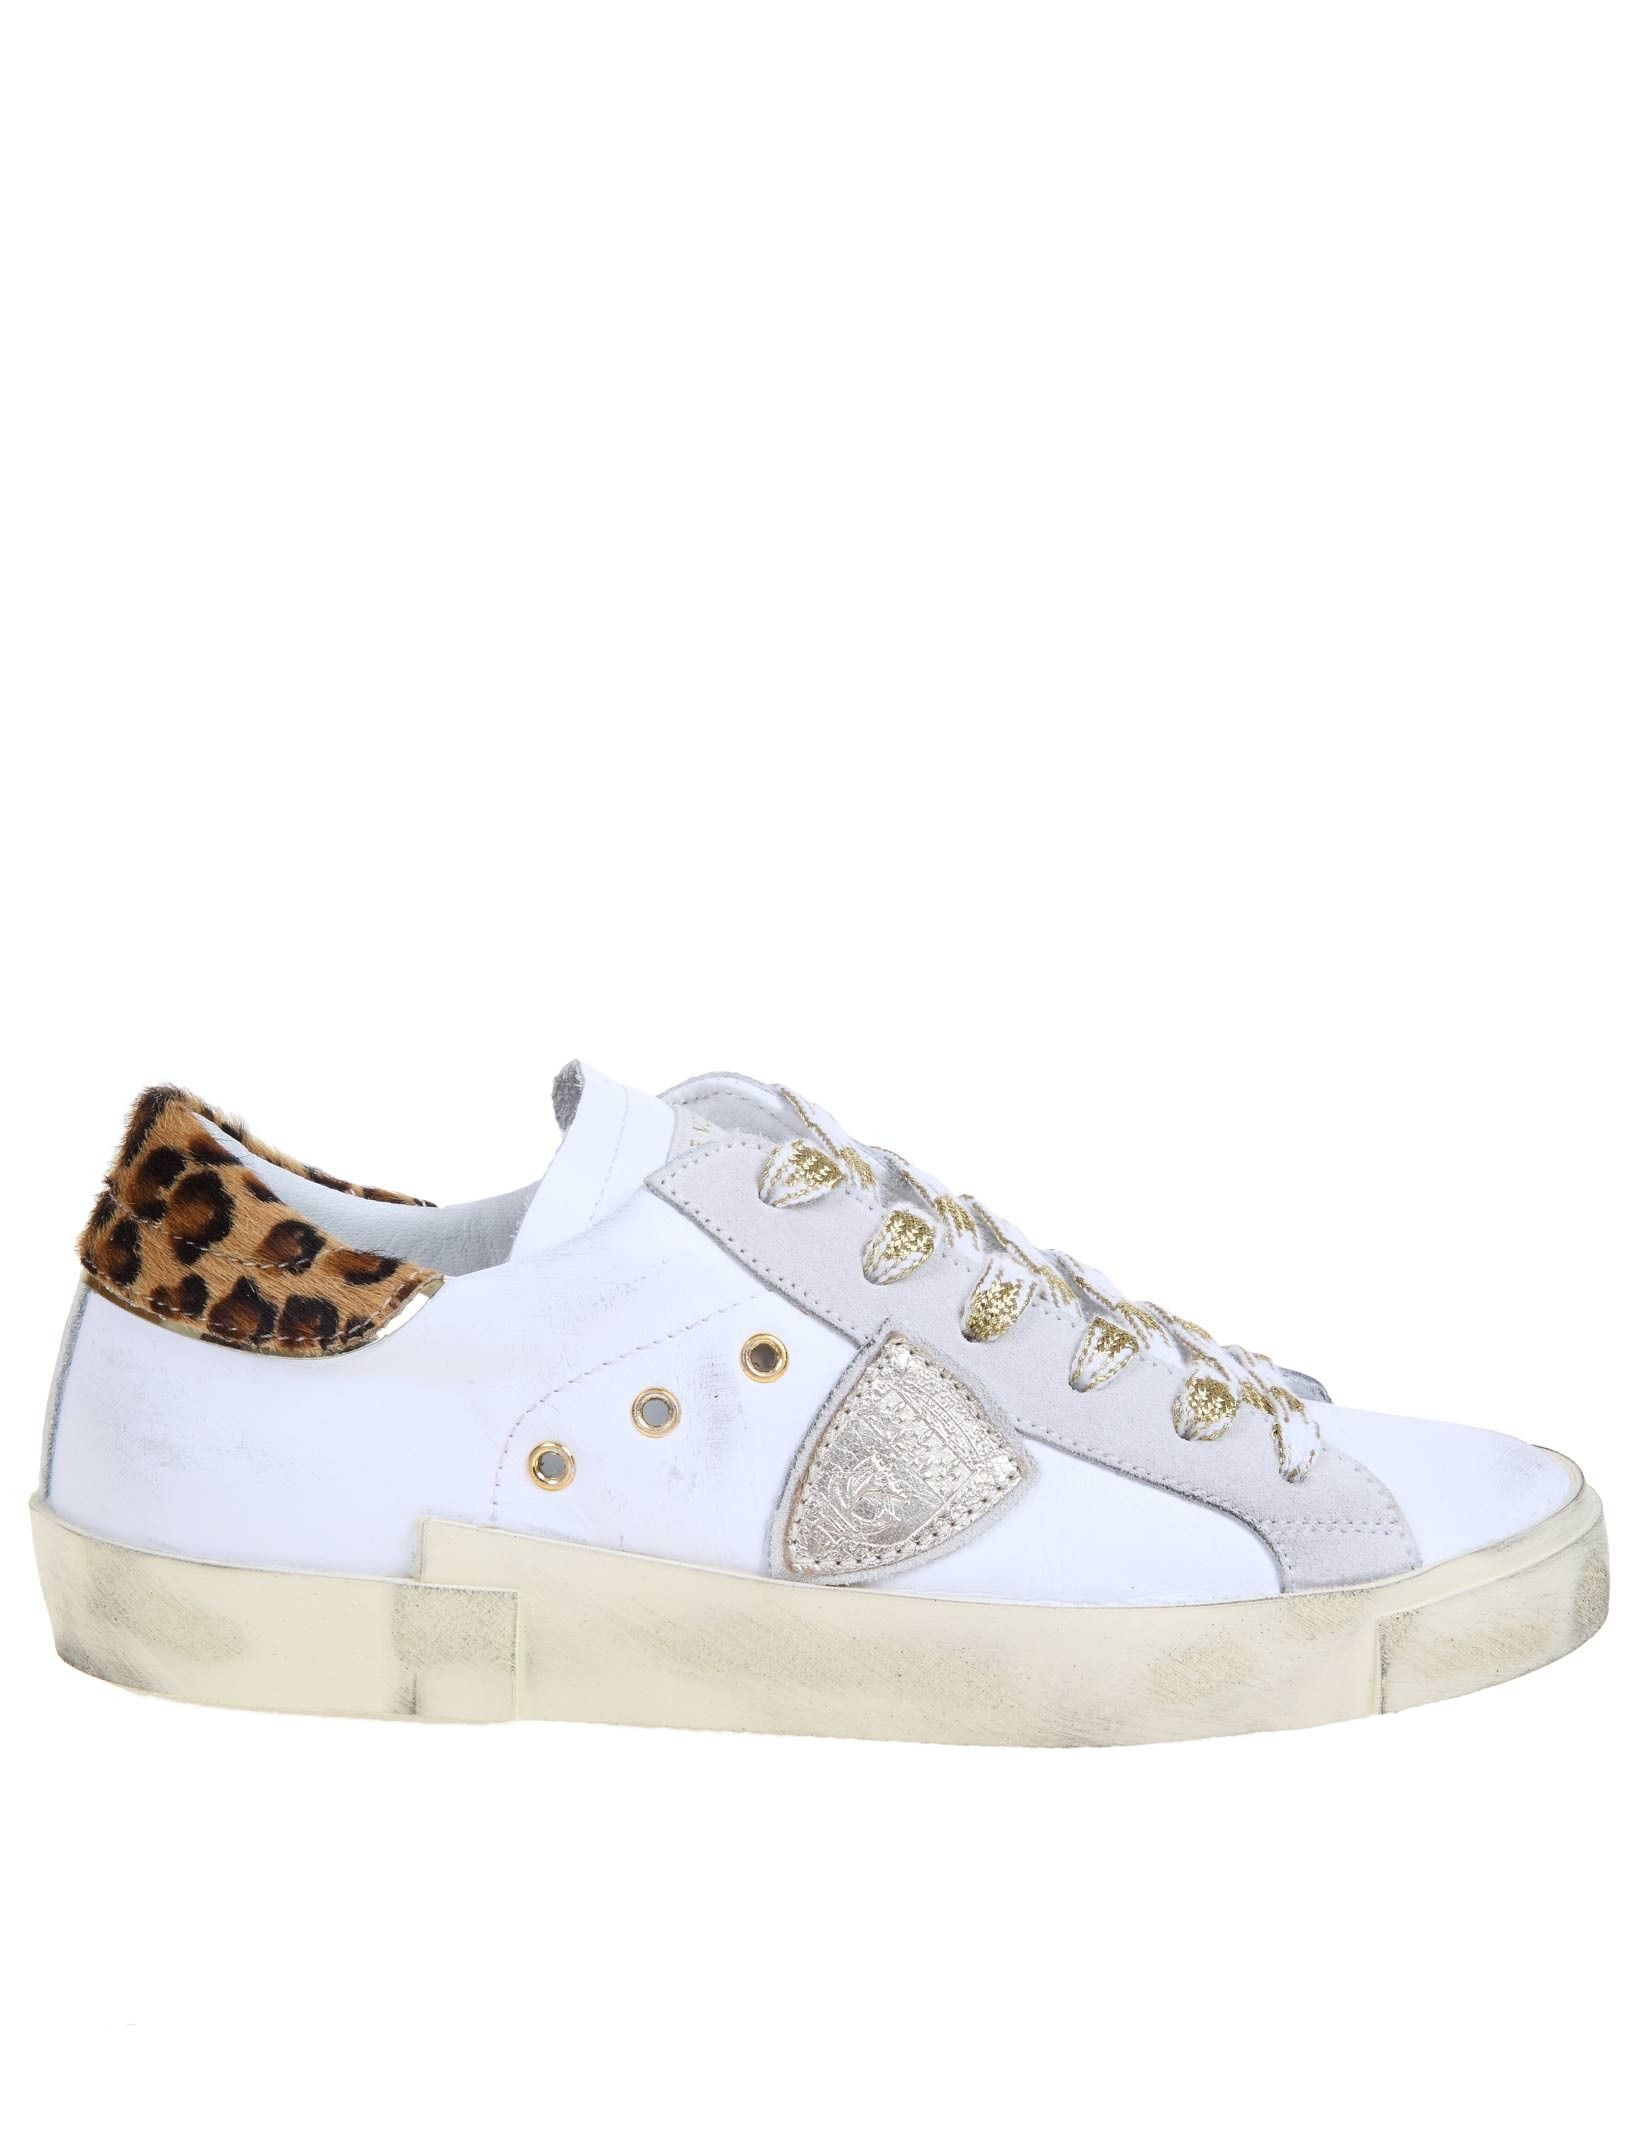 Philippe Model PHILIPPE MODEL WOMEN'S PRLDVL03 WHITE LEATHER SNEAKERS